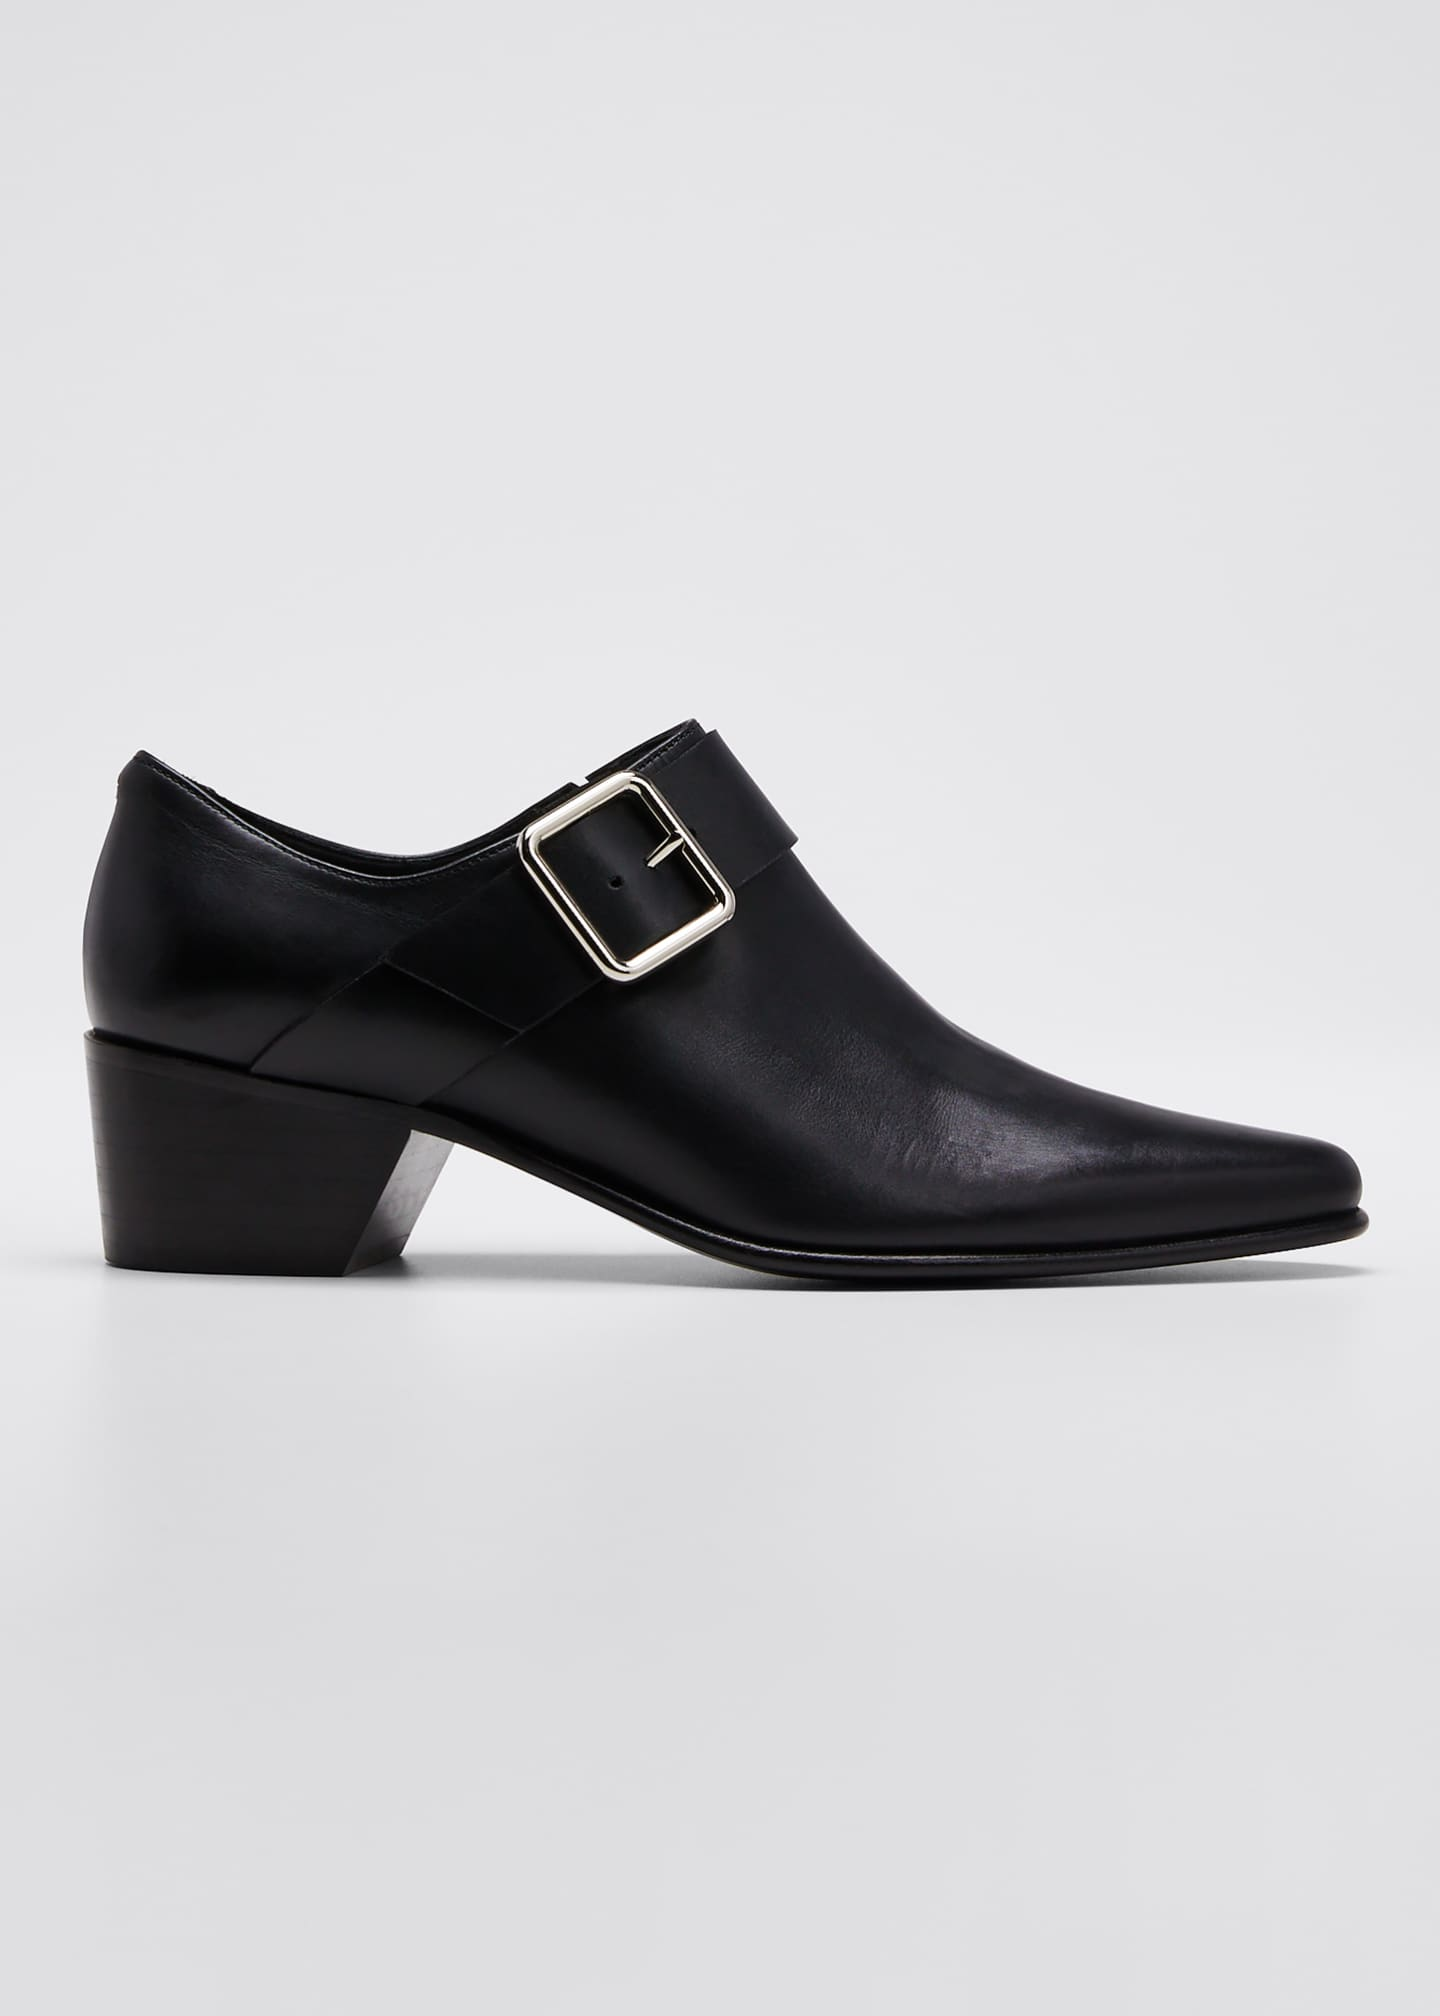 Pierre Hardy Joni Leather Buckle Loafers